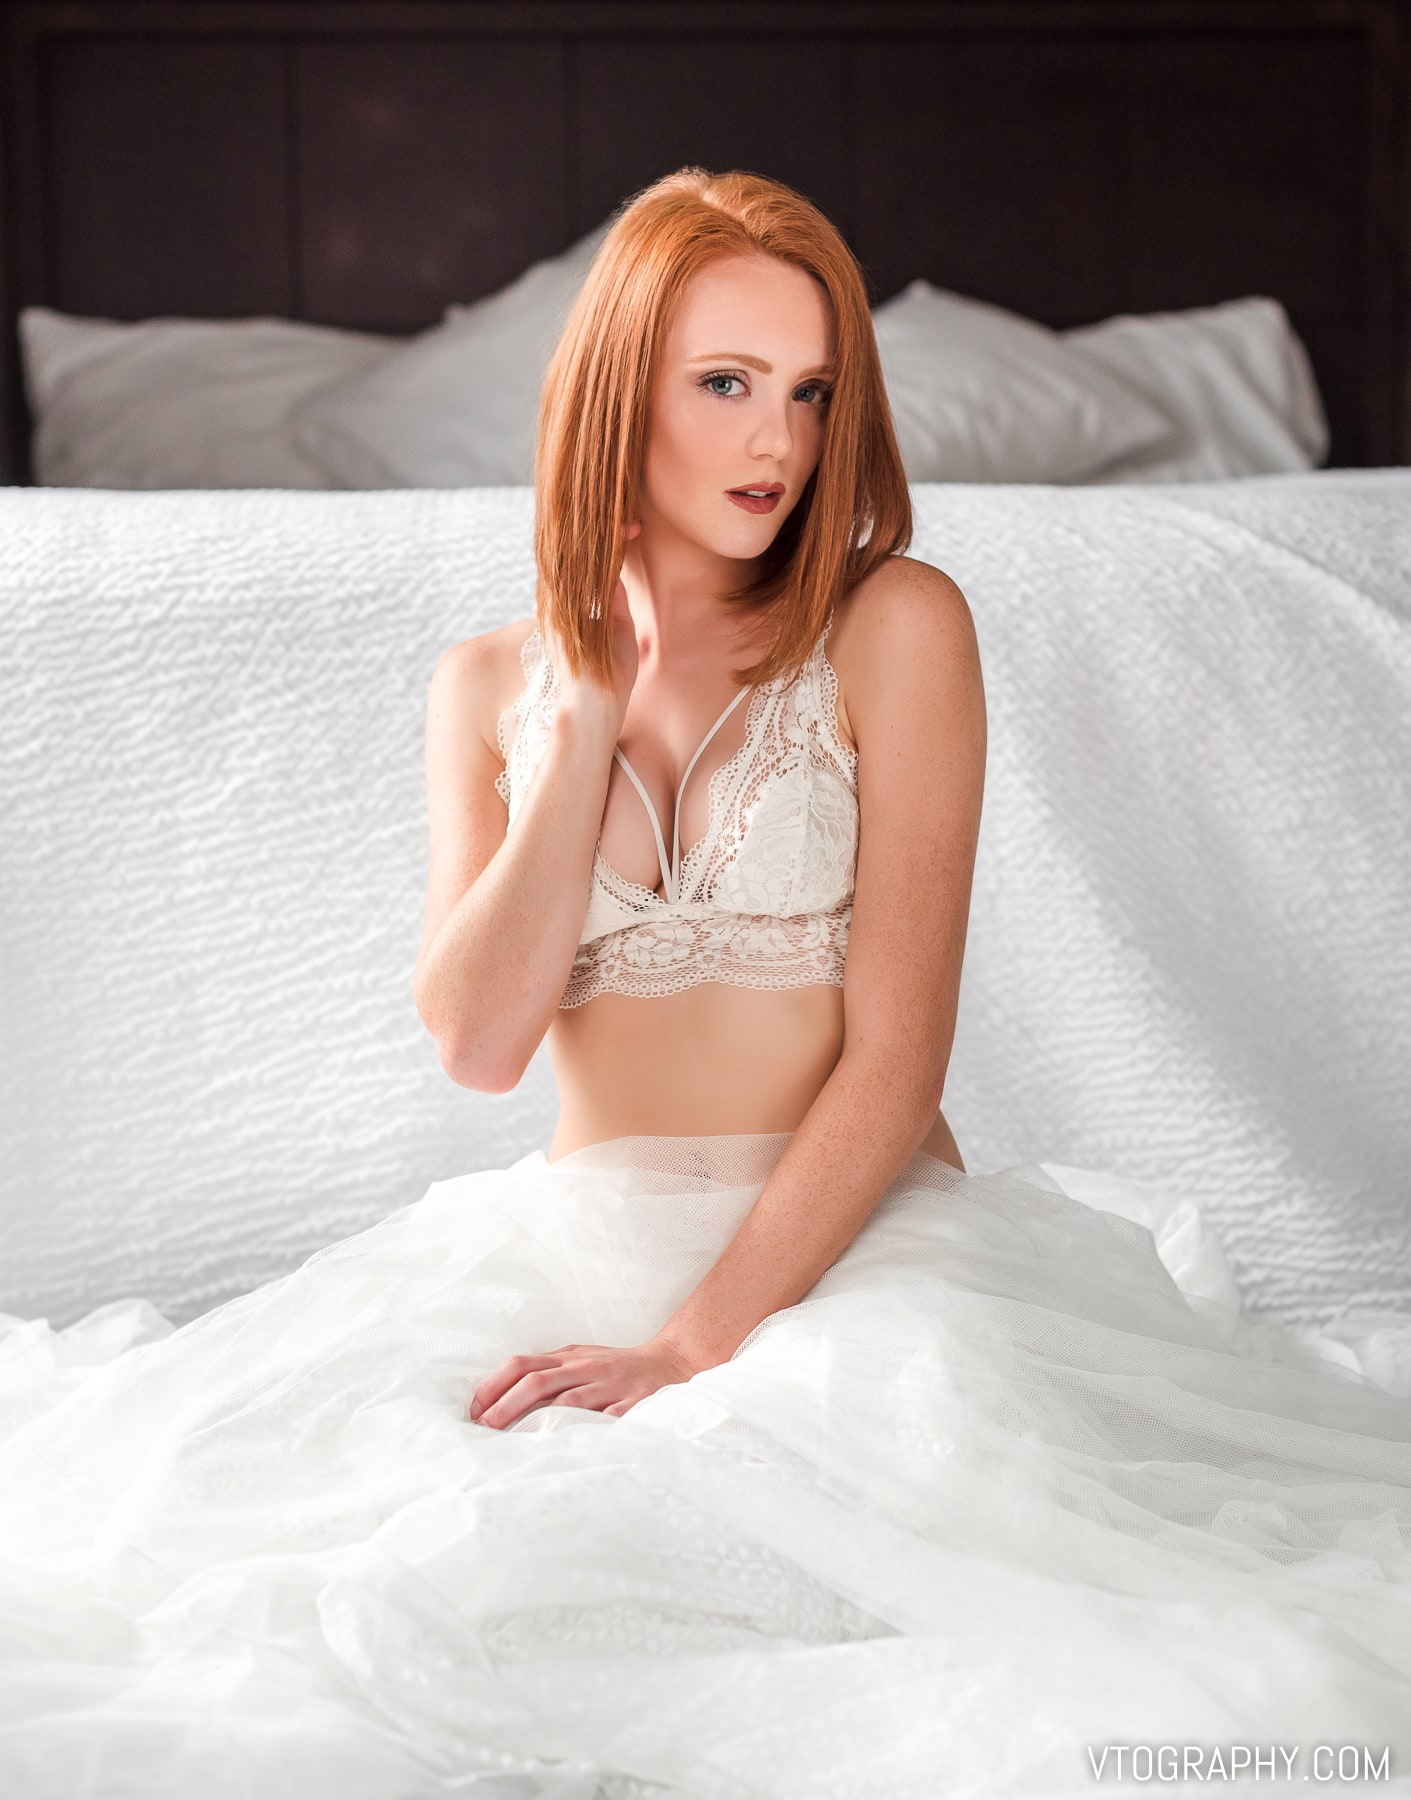 Ginger model Ashley in lace top